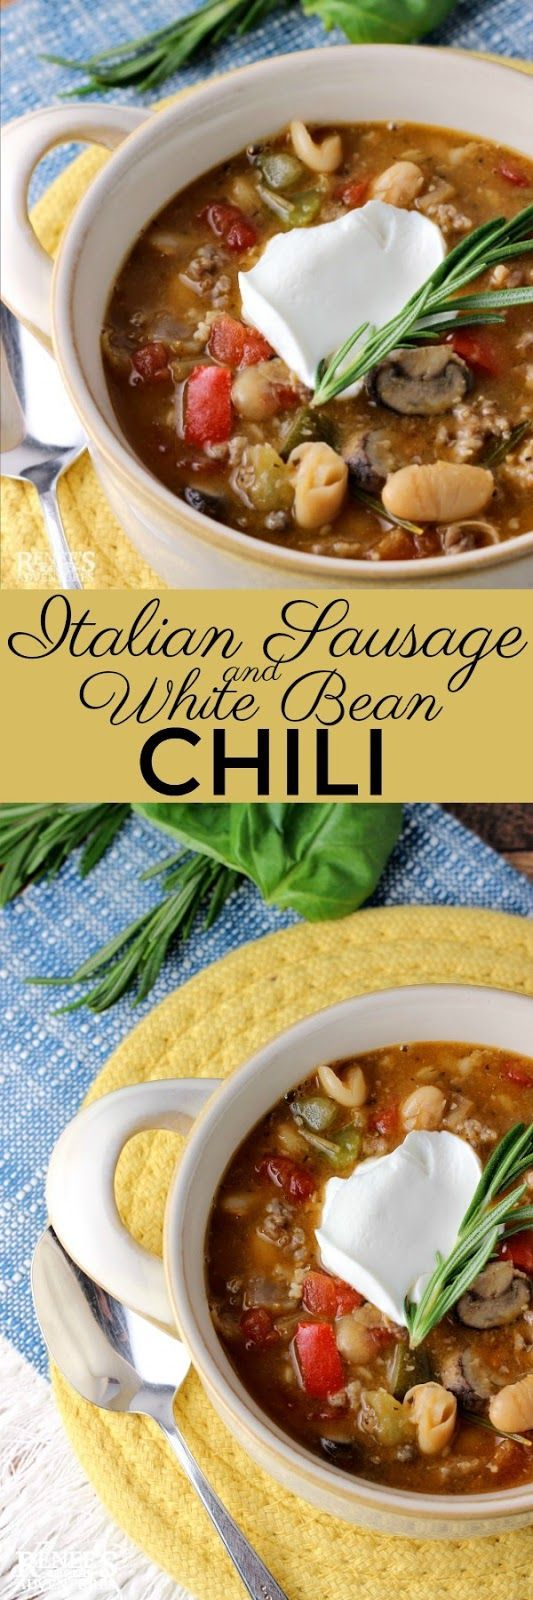 Italian Sausage and White Bean Chili | Posted By: DebbieNet.com